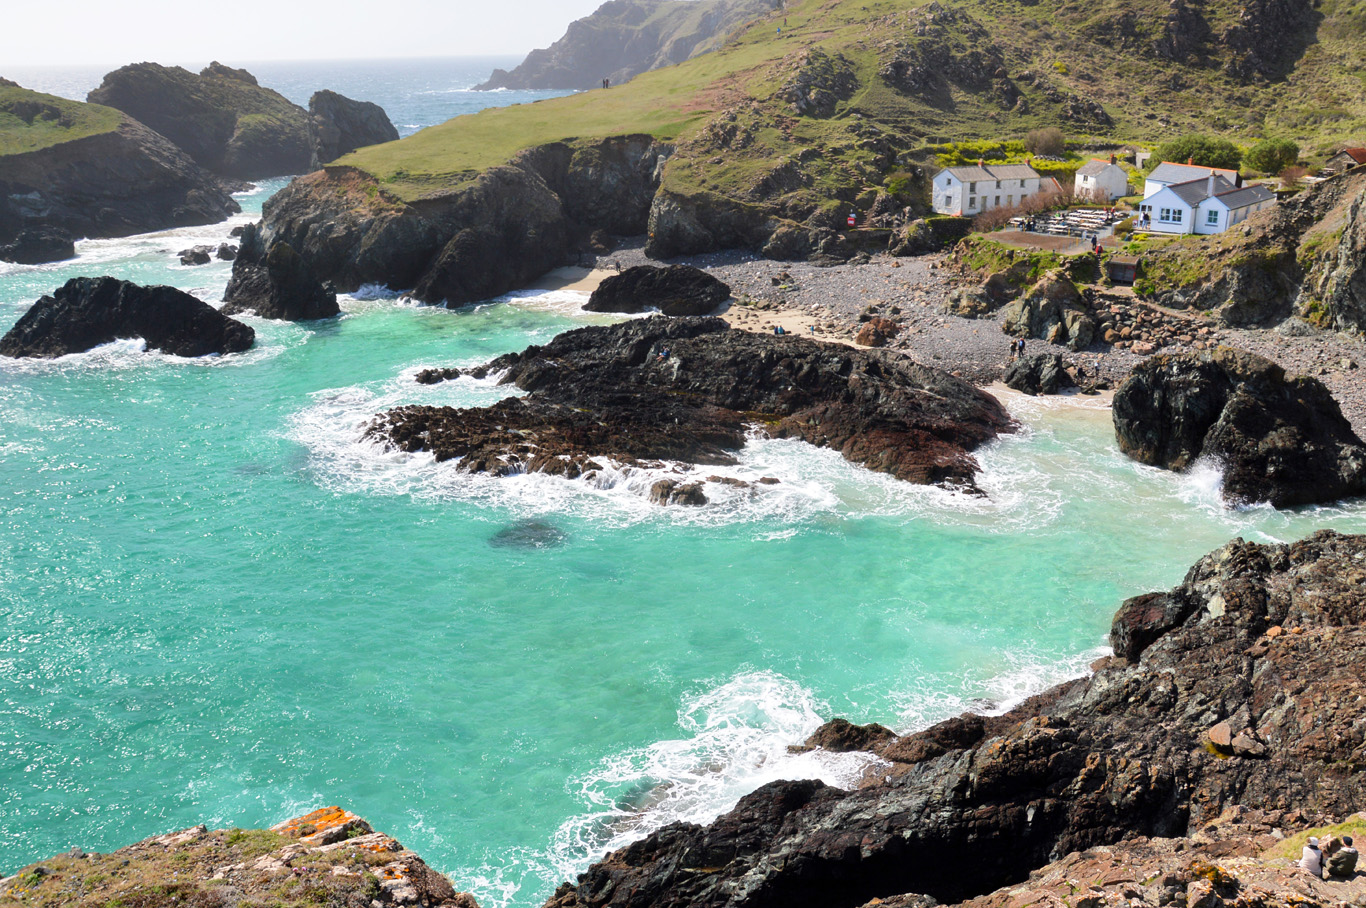 Black rocks contrast with turquoise waters at Kynance Cove